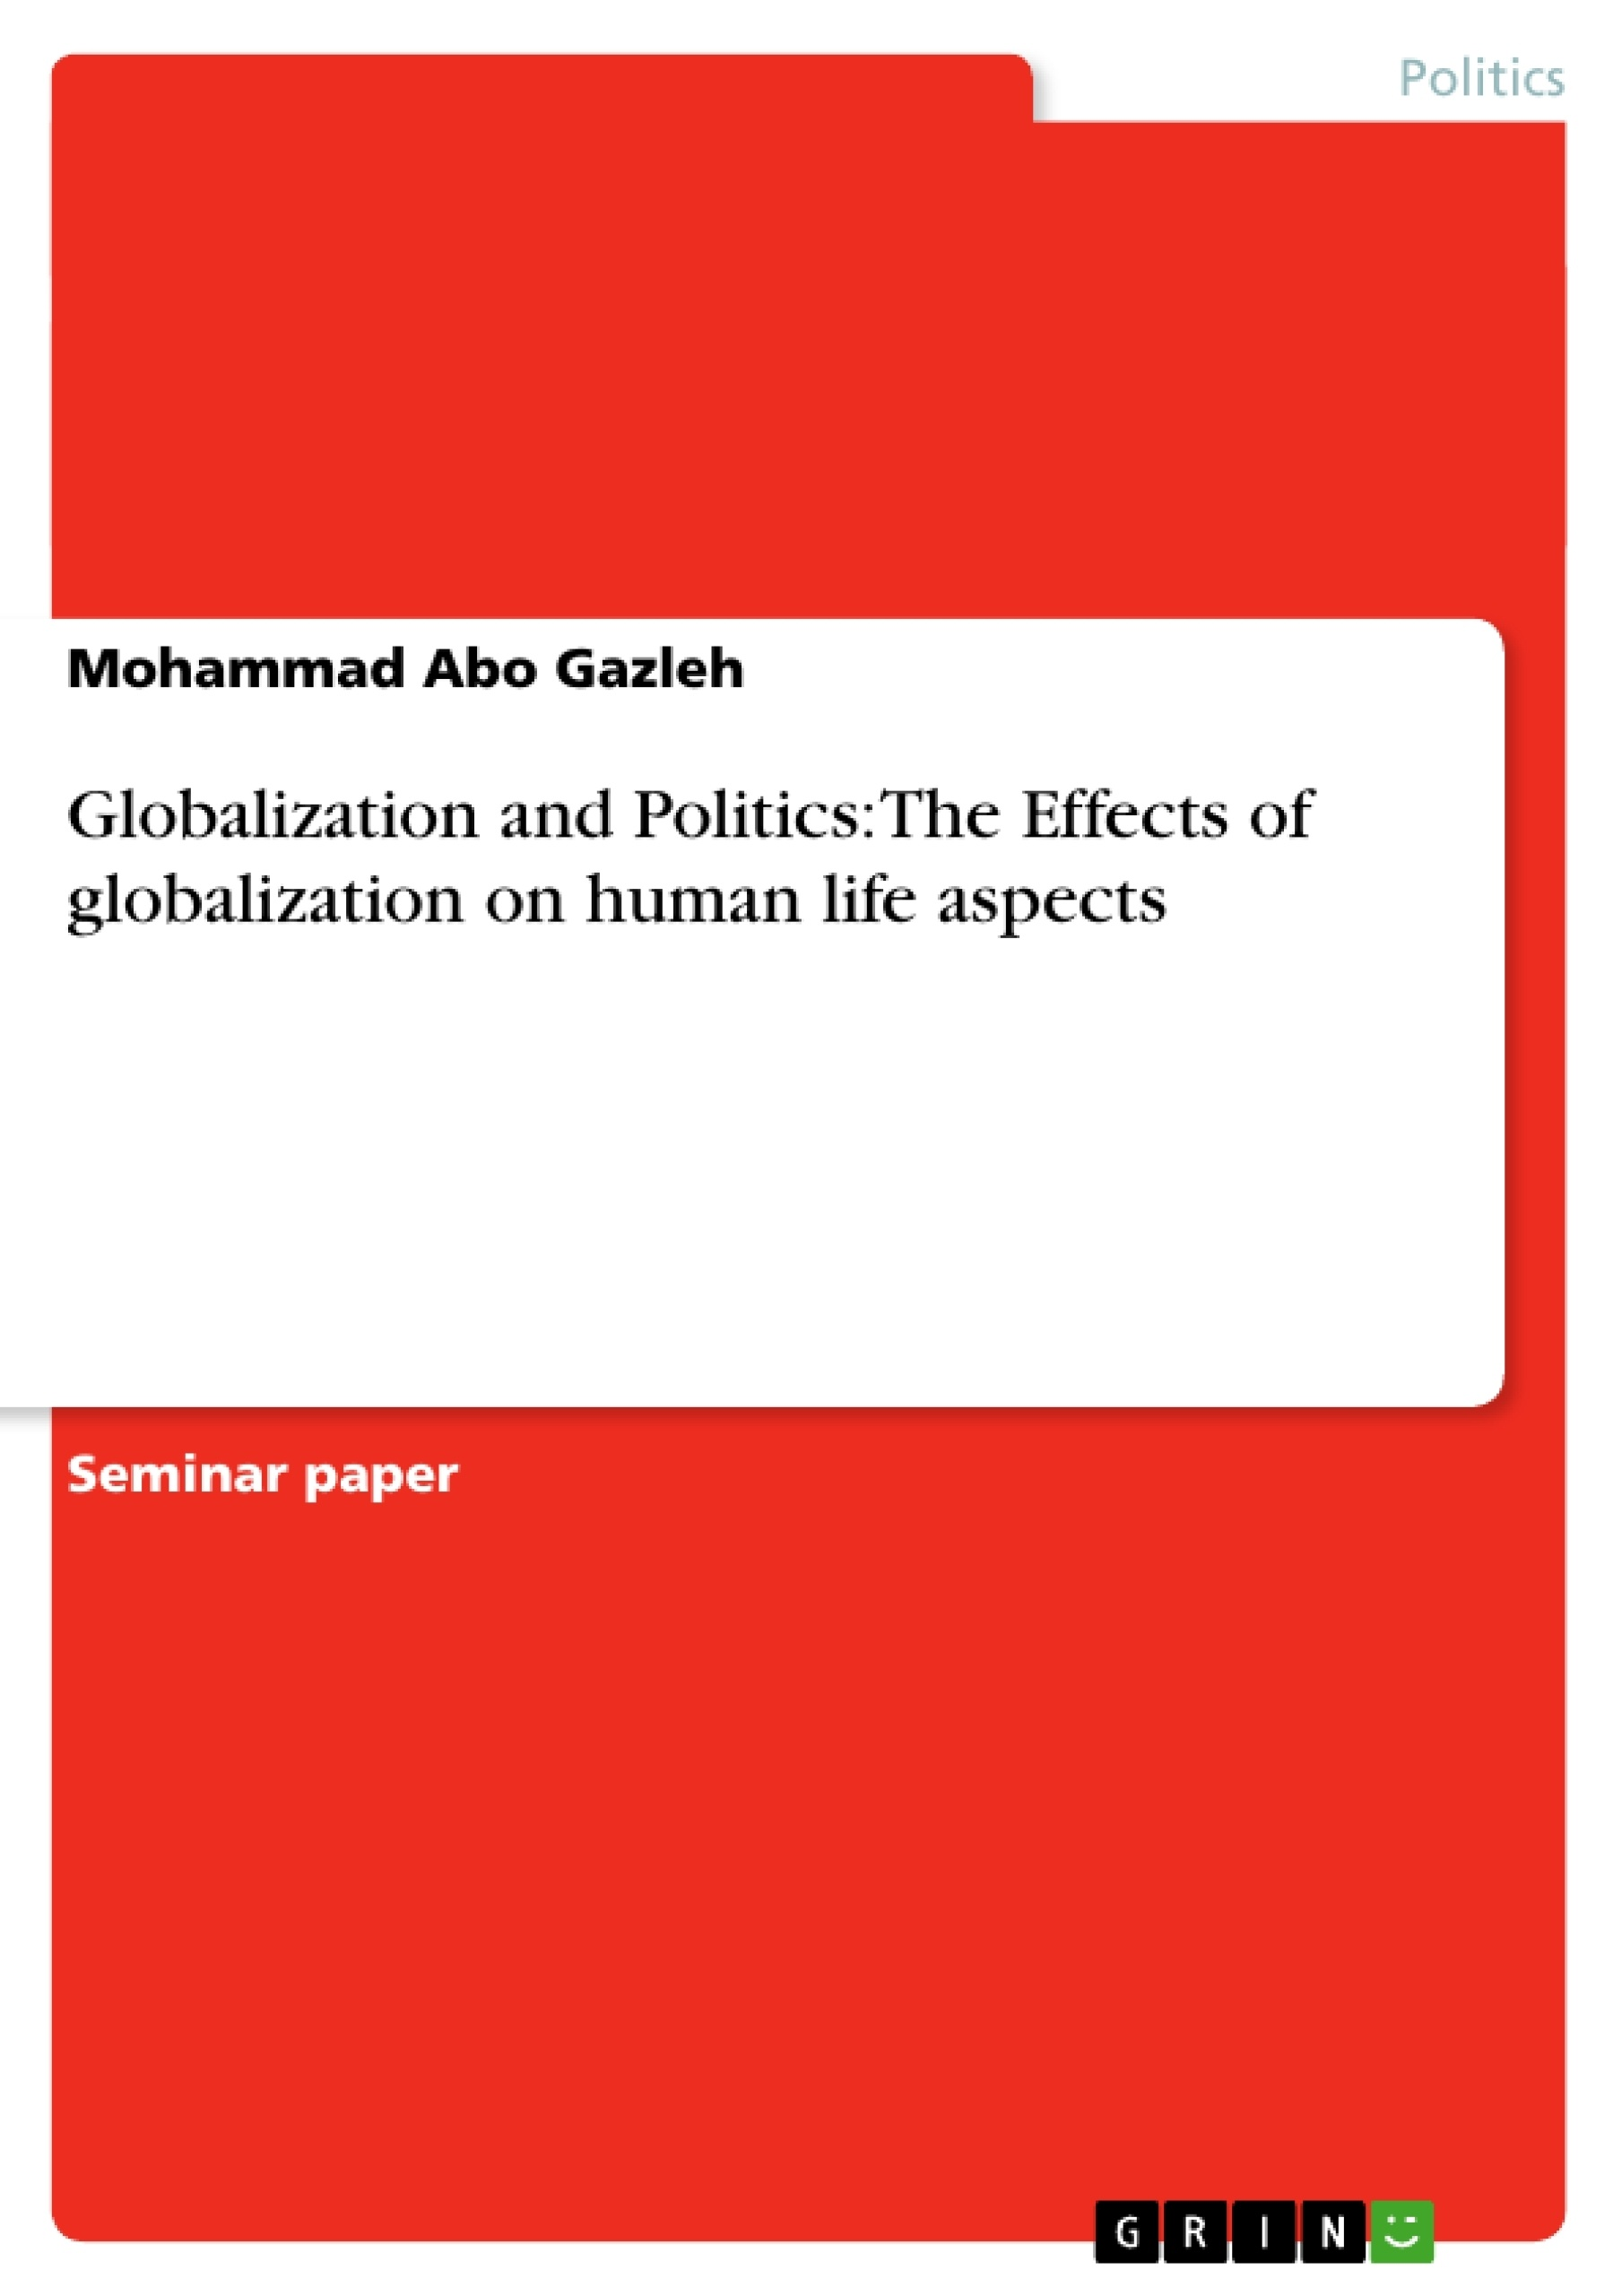 013 110500 0 Business Topics For Research Paper Magnificent Globalization Full